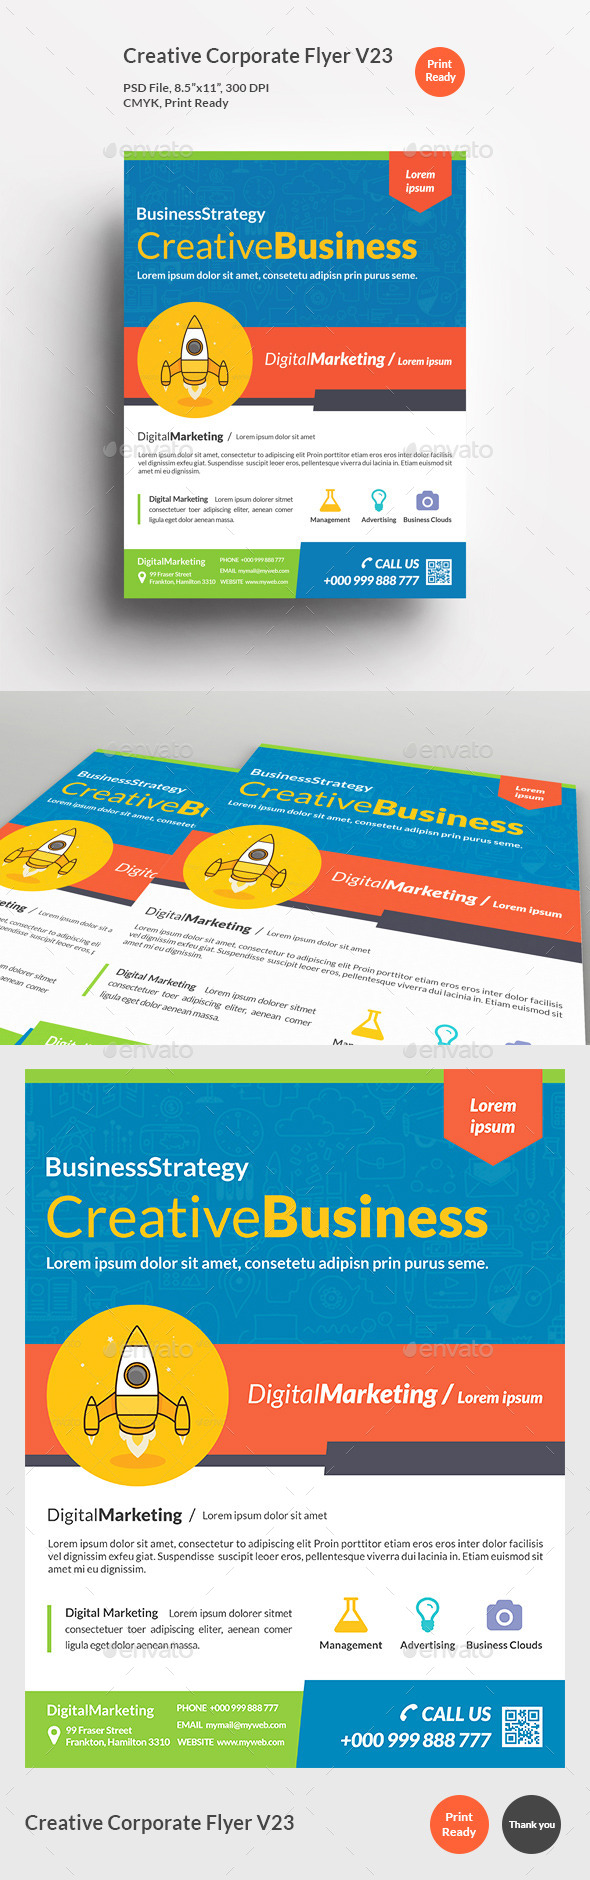 Creative Corporate Flyer V23